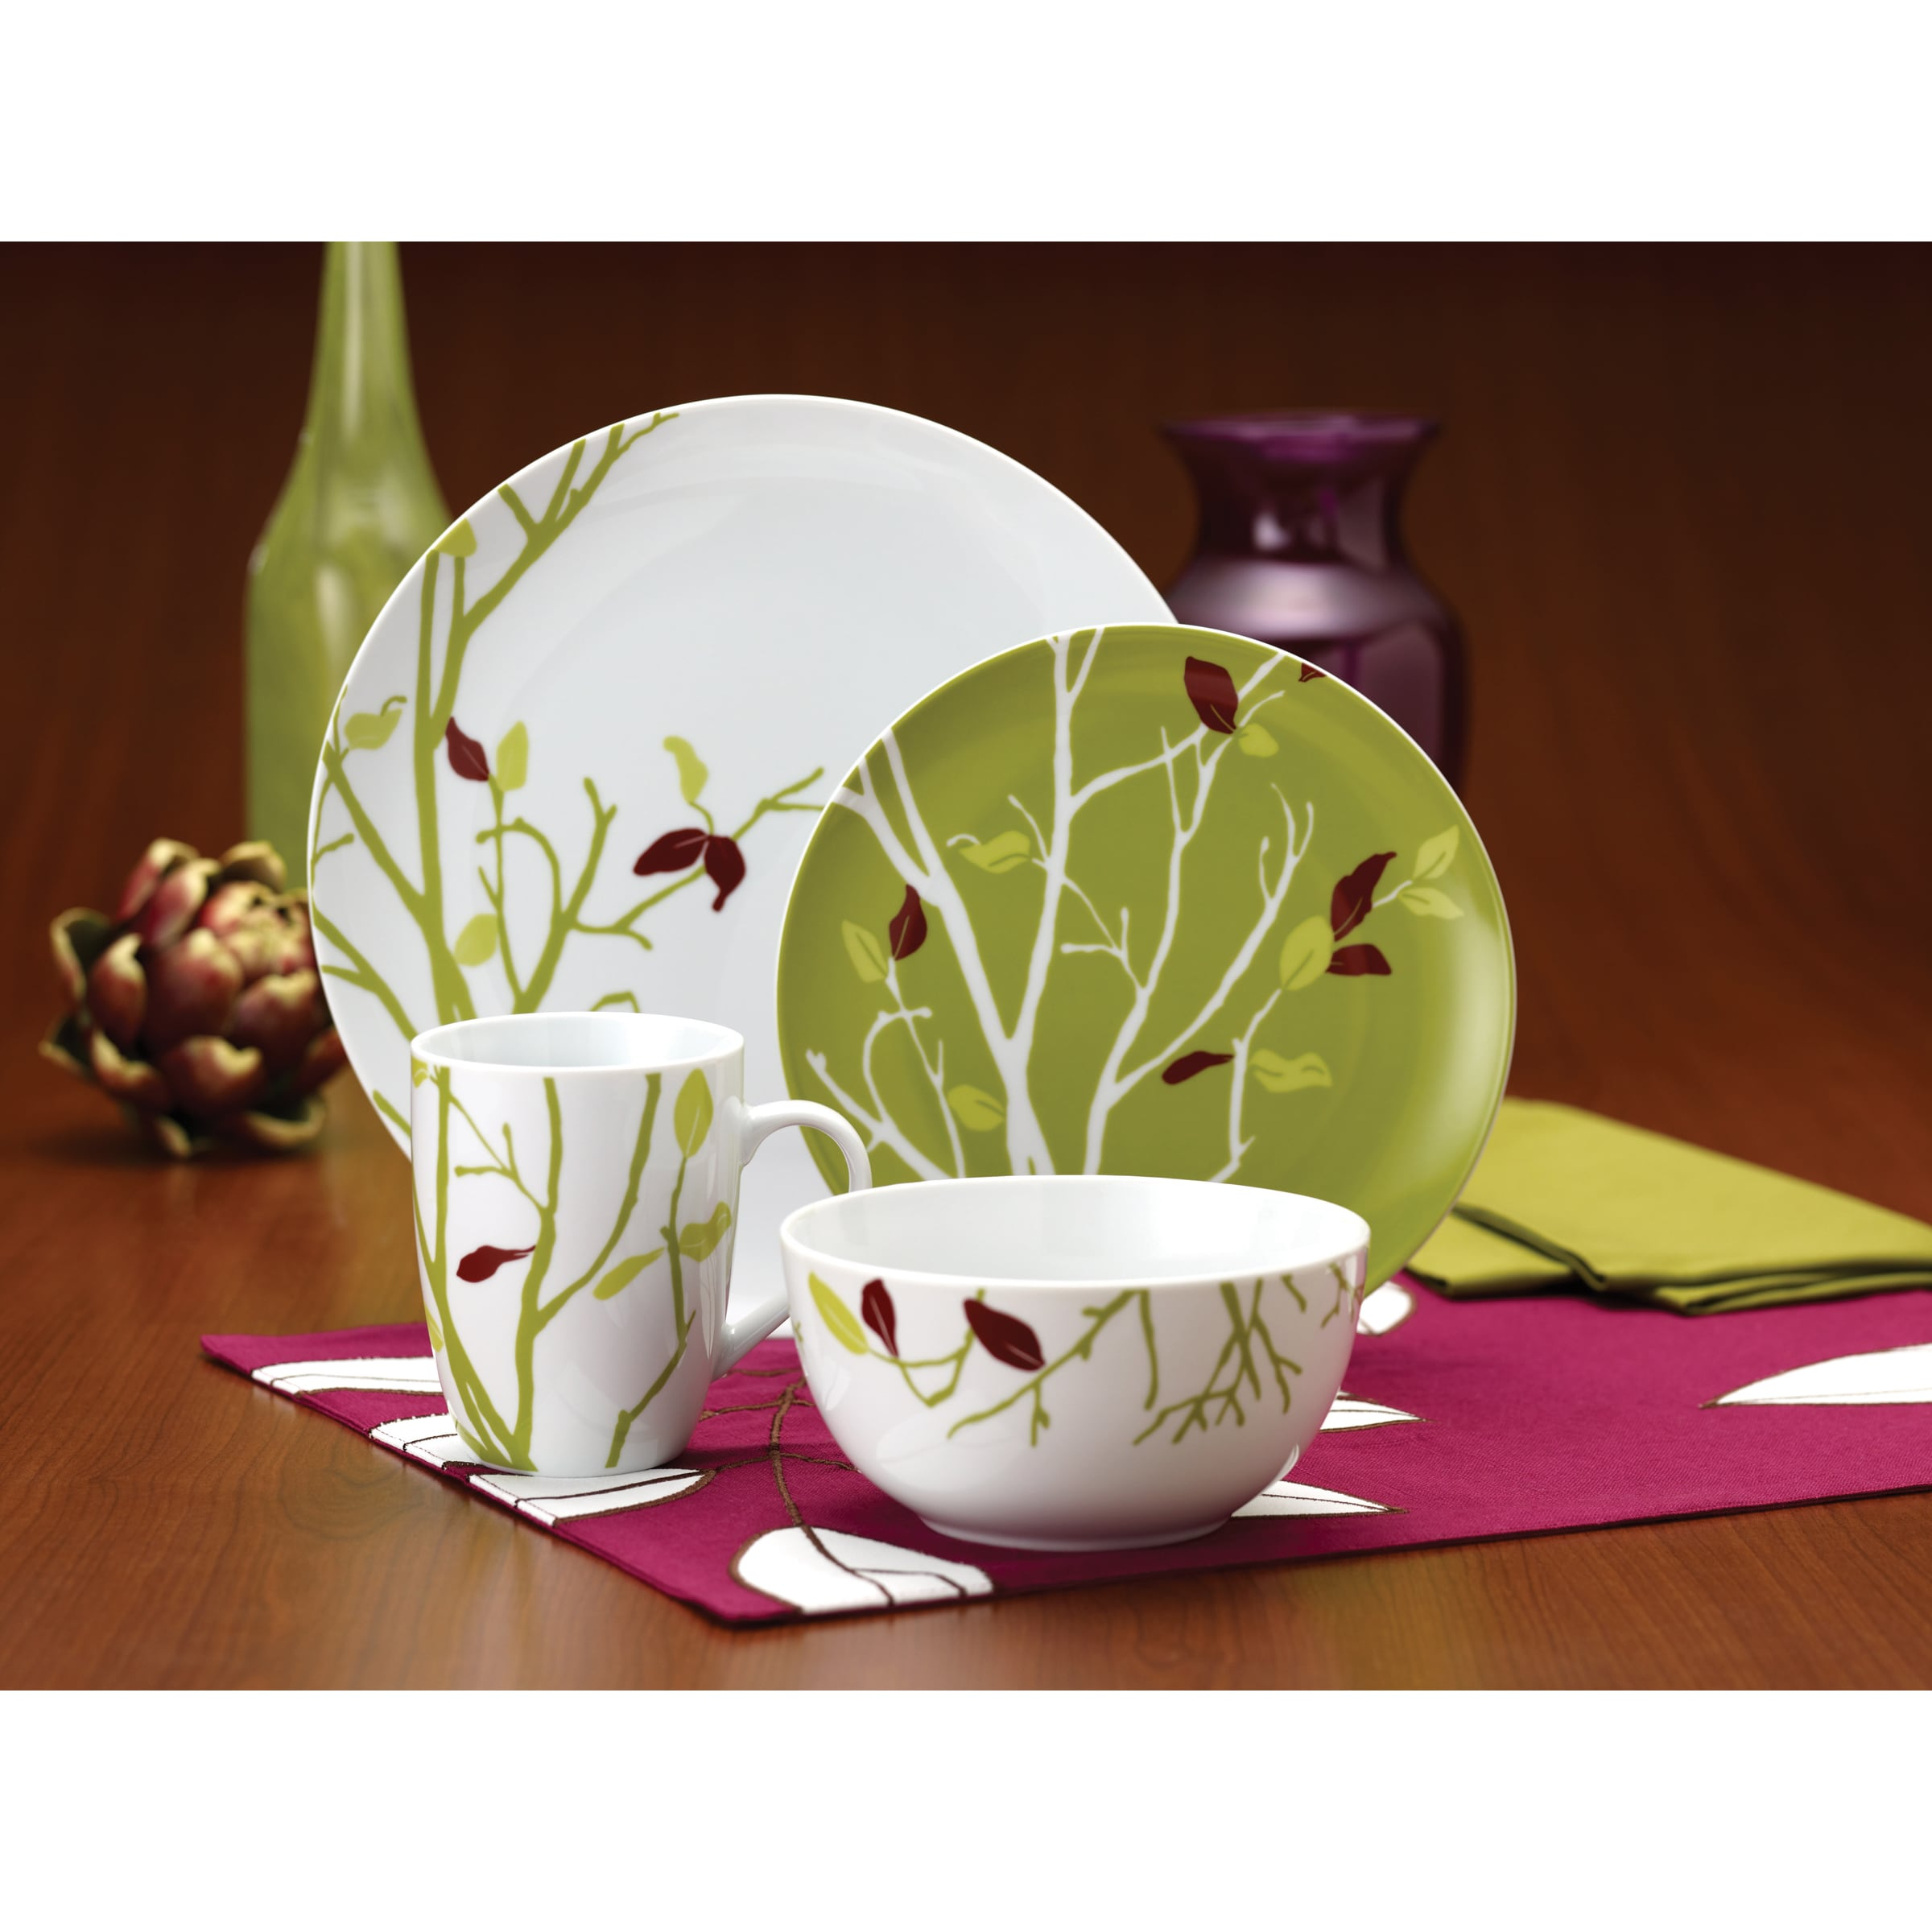 Shop Rachael Ray Dinnerware Seasons Changing 16-piece Porcelain Dinnerware Set - Free Shipping Today - Overstock.com - 7468937  sc 1 st  Overstock.com & Shop Rachael Ray Dinnerware Seasons Changing 16-piece Porcelain ...